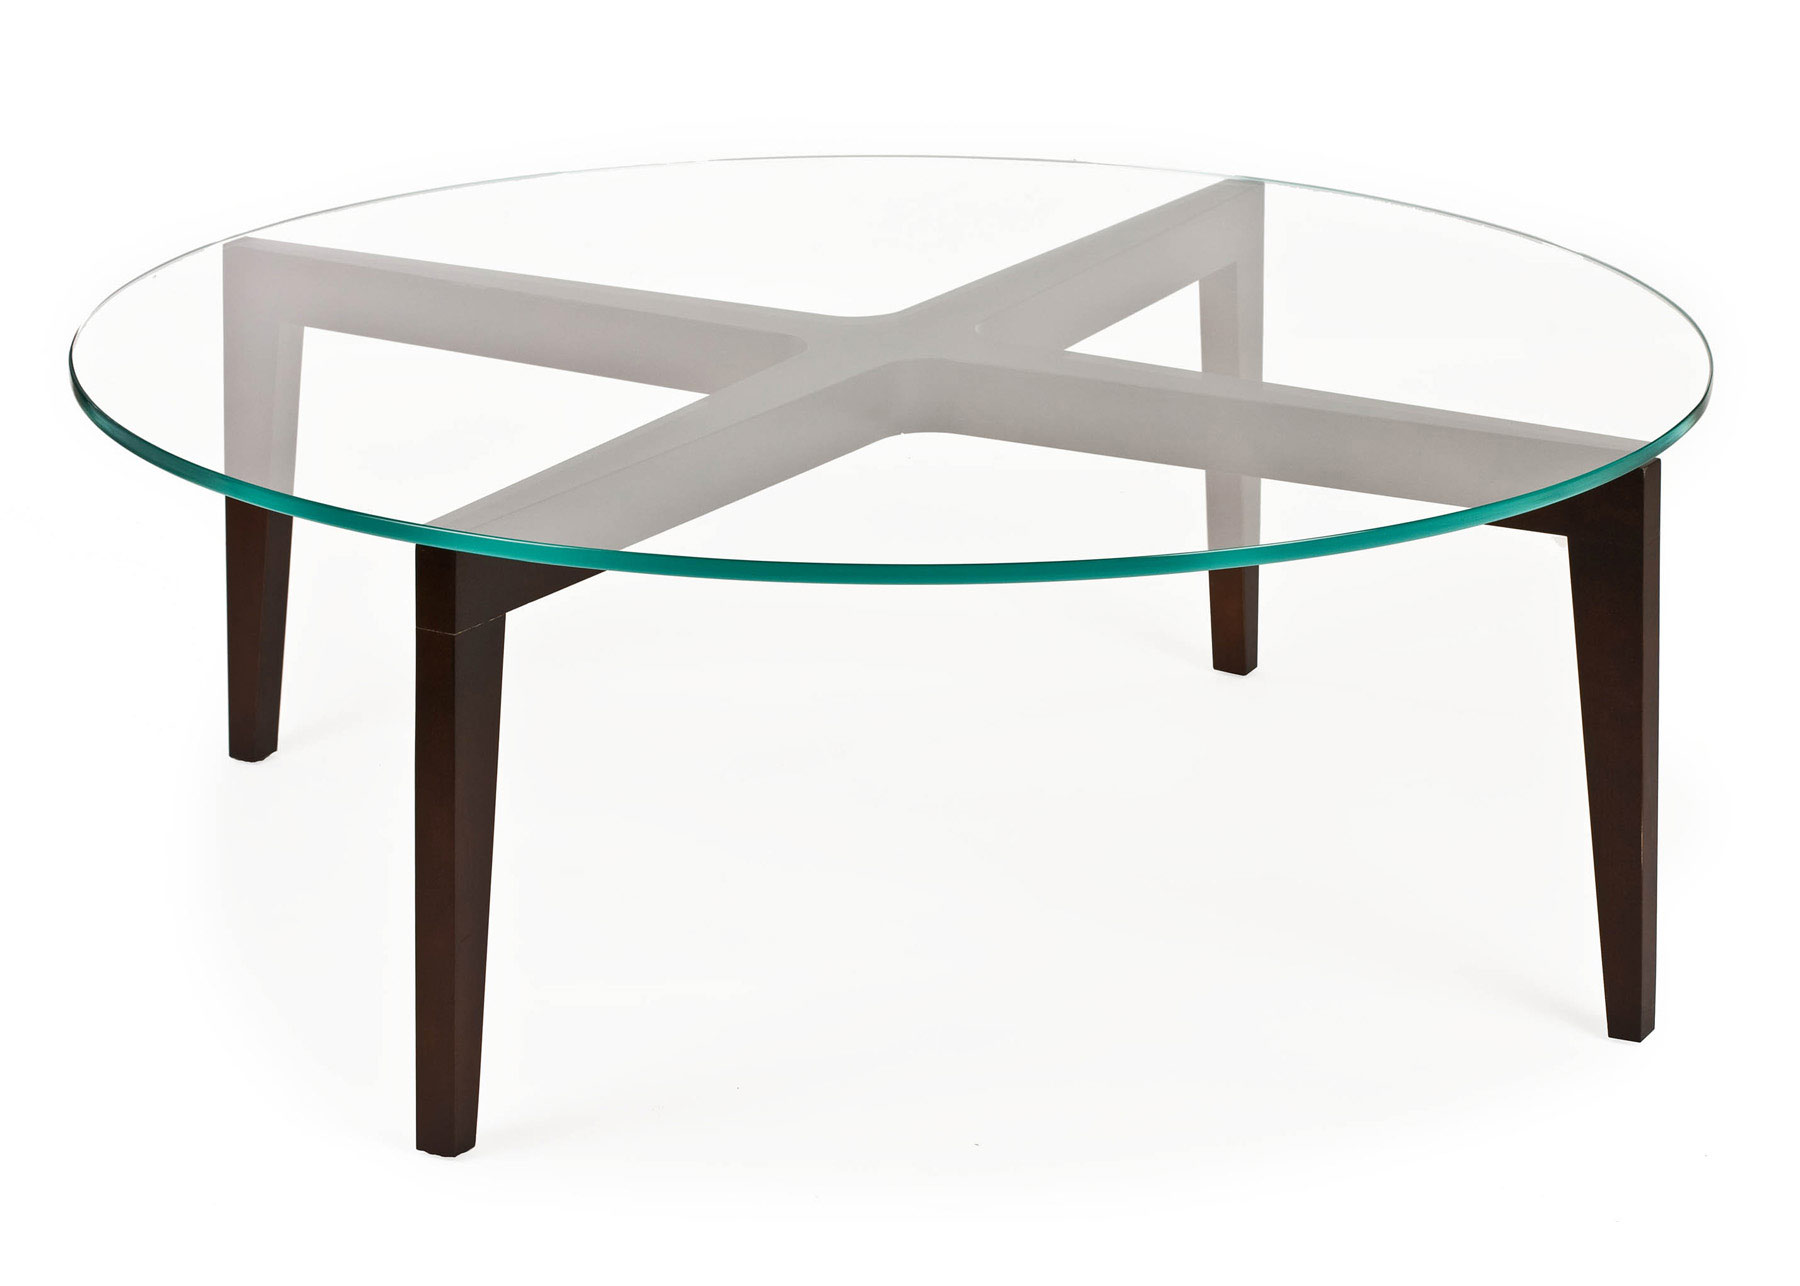 simple-elegance-wood-base-tables-with-round-glass-tops-end-table-20inch-x-23inch-in-glass-or-starfire-glass-round-wood-and-glass-coffee-table (Image 9 of 10)